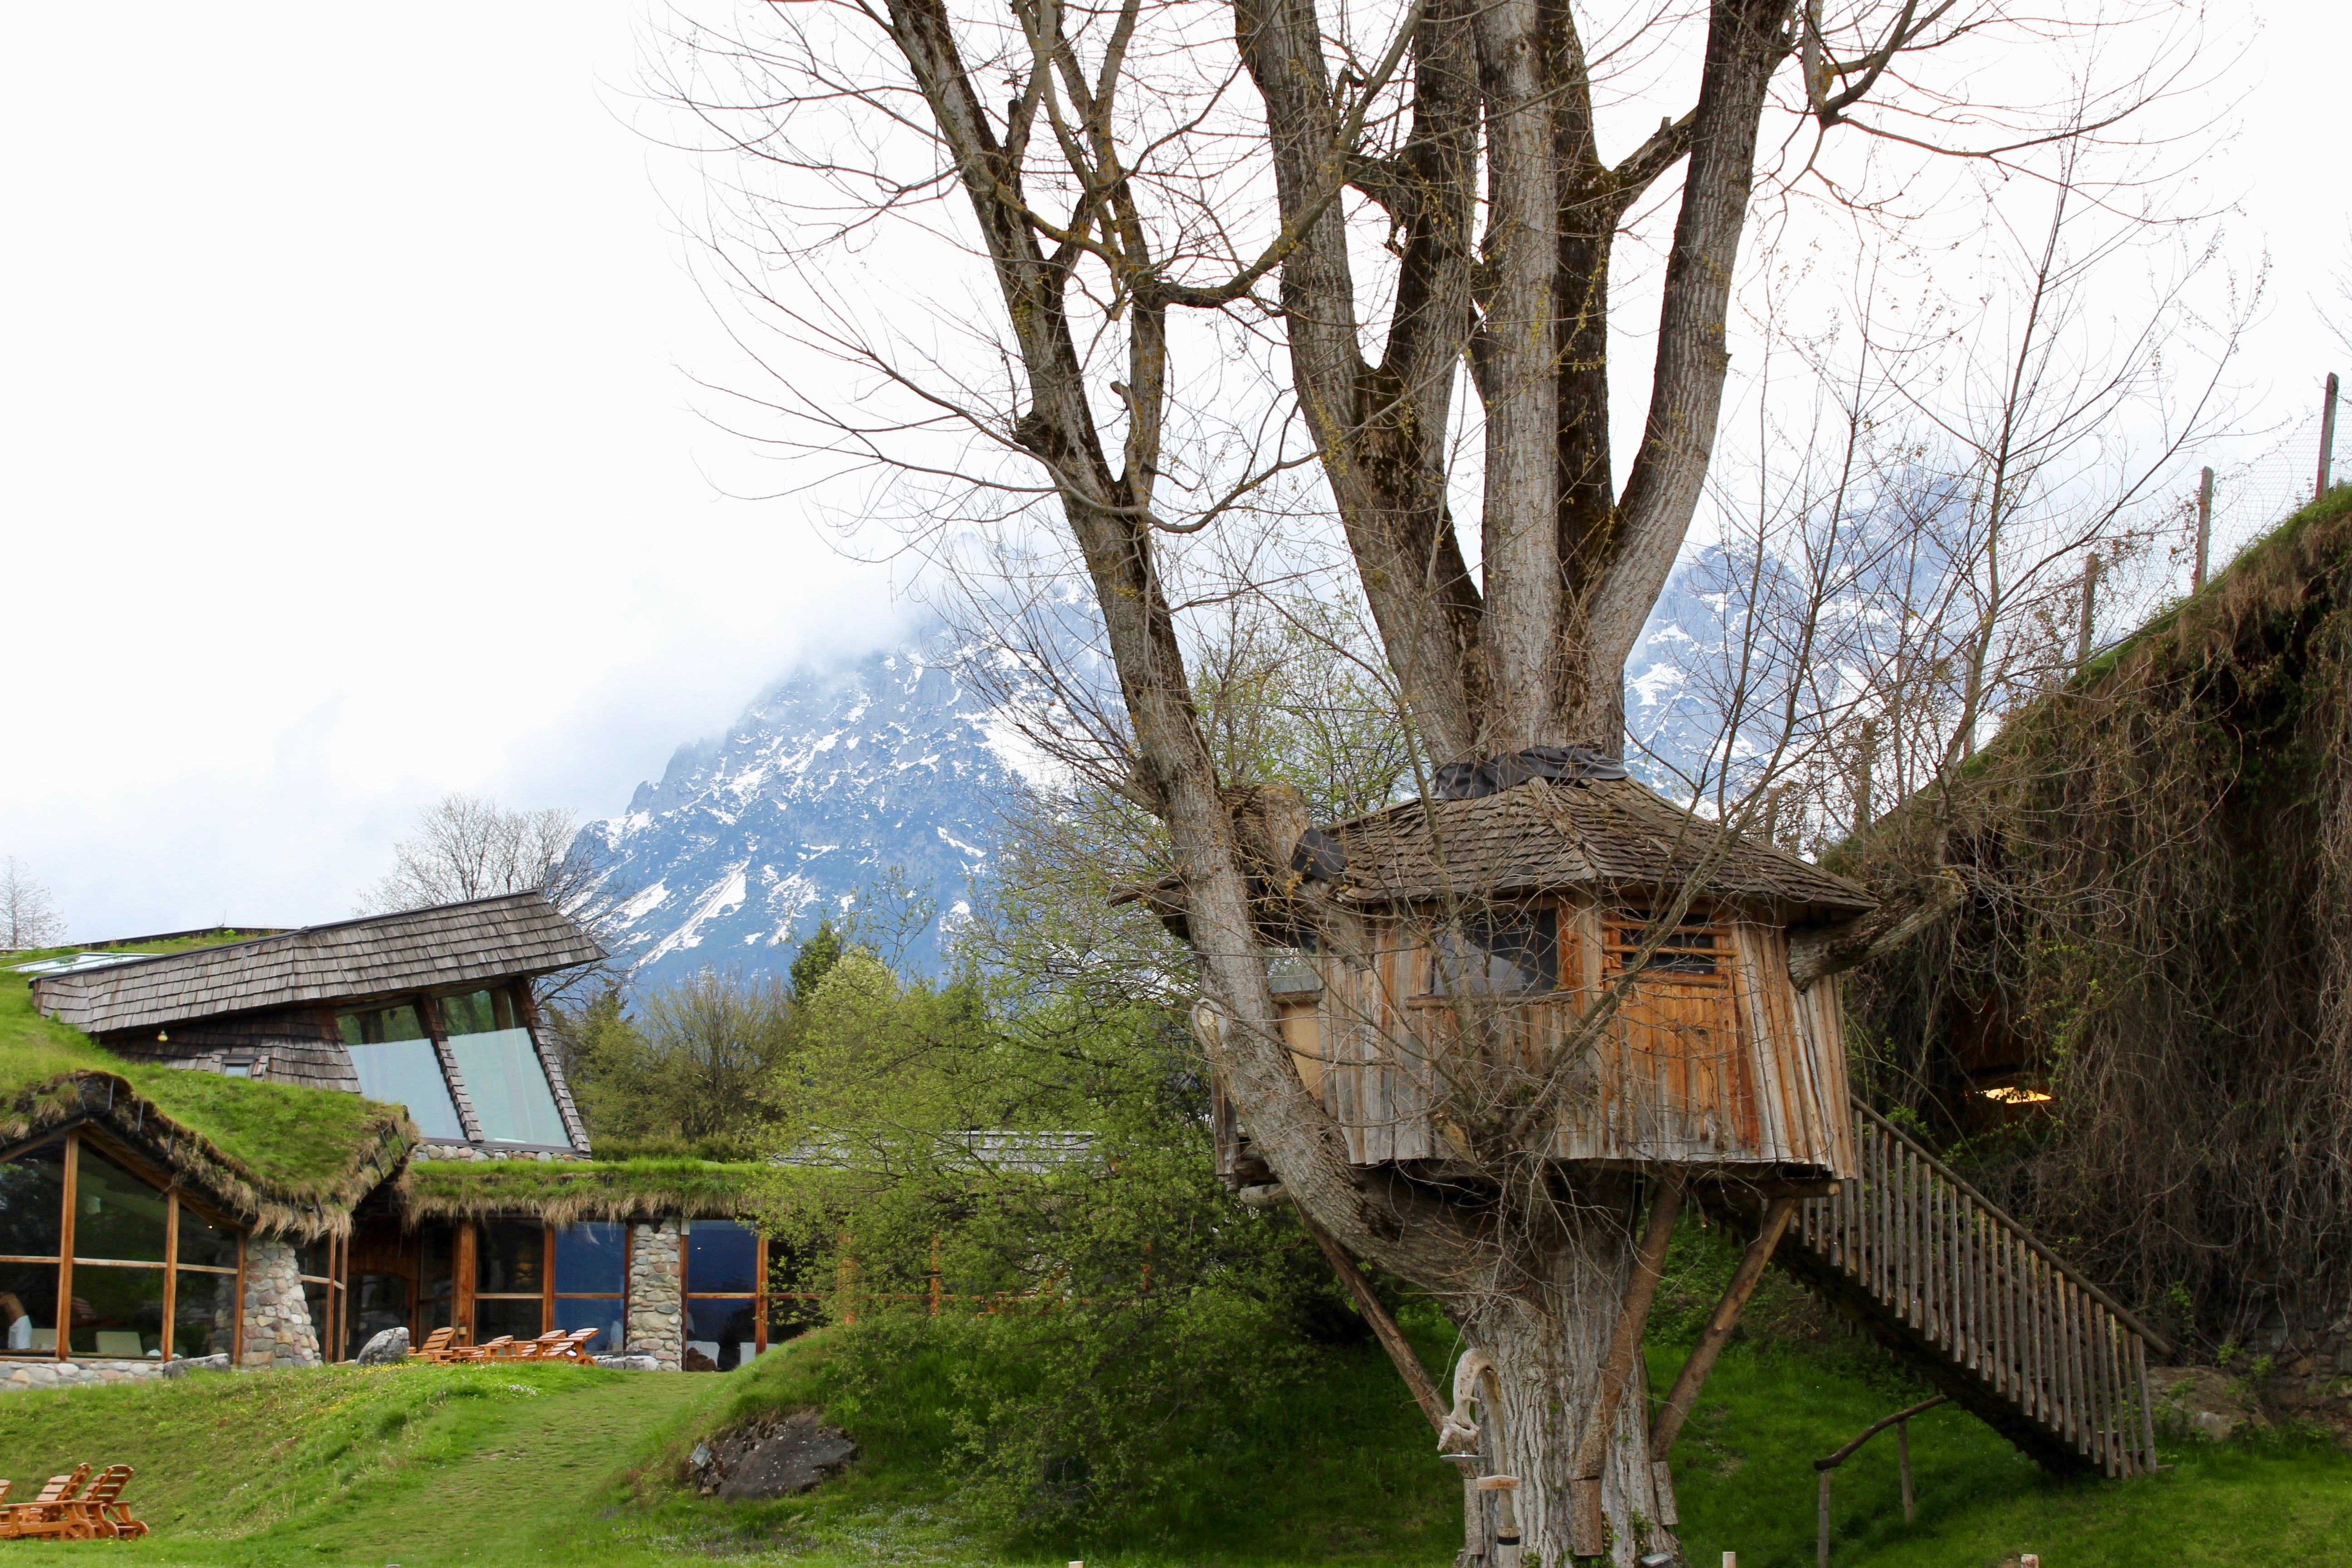 Treehouse in the stanglwirt